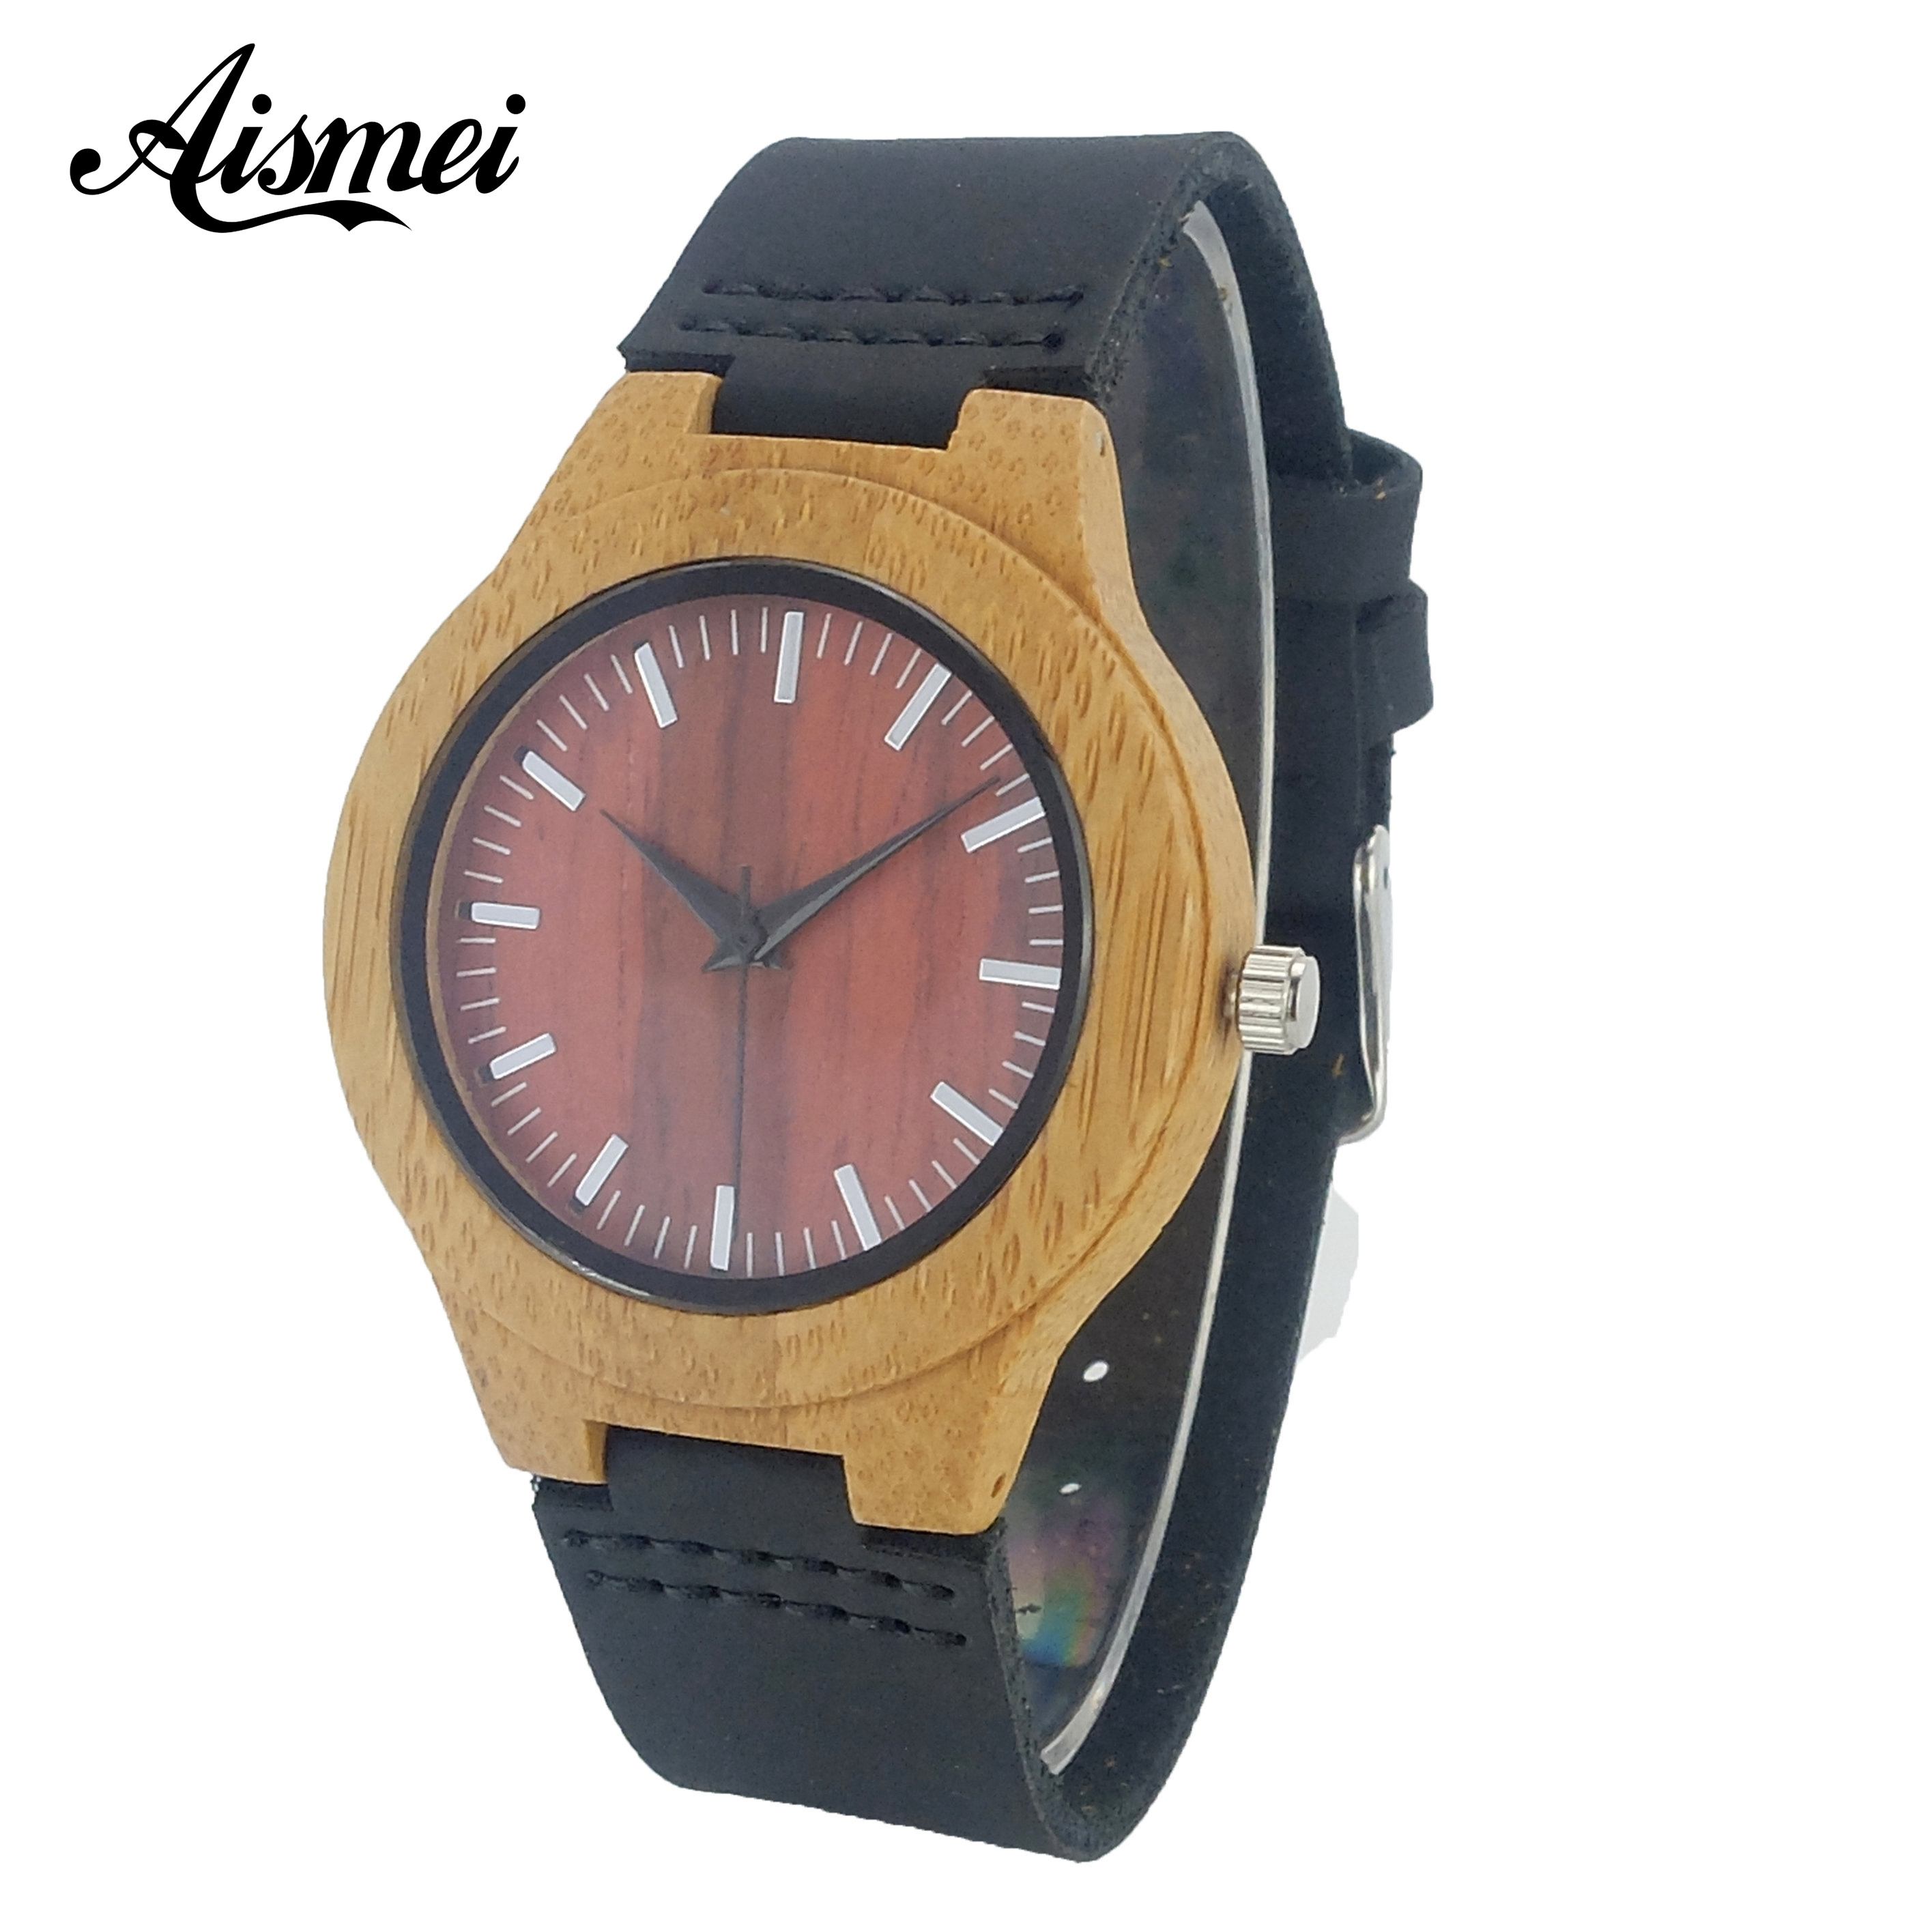 2017 Women Wood Watch Simple Design Fashion Analog Casual Bamboo Wrist Watch With Genuine Leather female Clock Reloj de madera fashion top gift item wood watches men s analog simple bmaboo hand made wrist watch male sports quartz watch reloj de madera